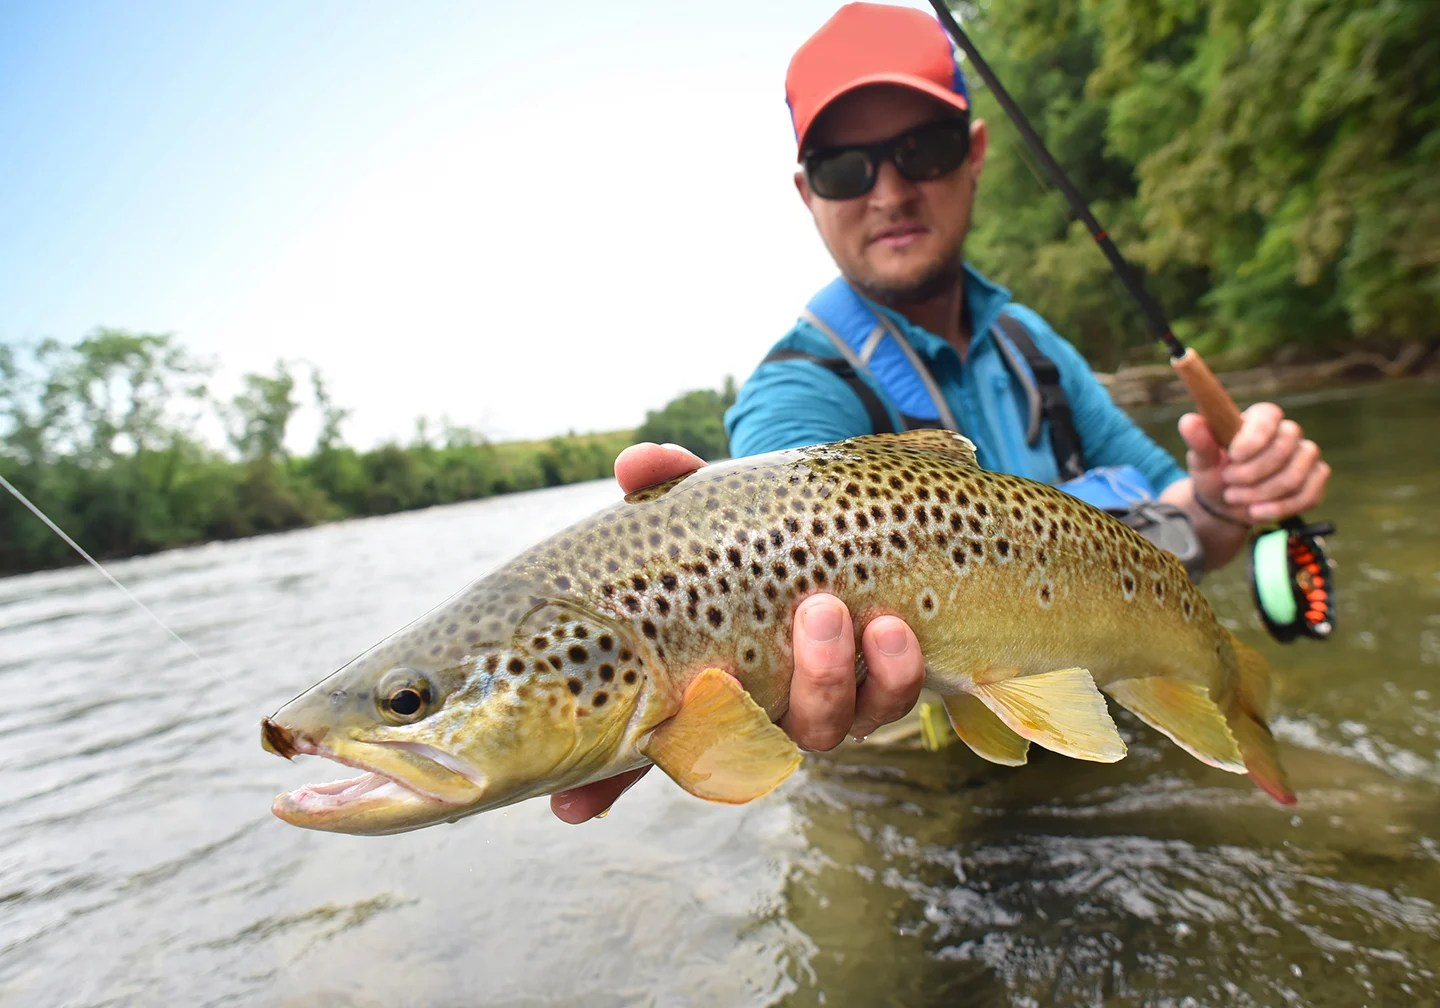 An angler crouching in a stream with a fly fishing rod in one hand and a brown trout in the other.